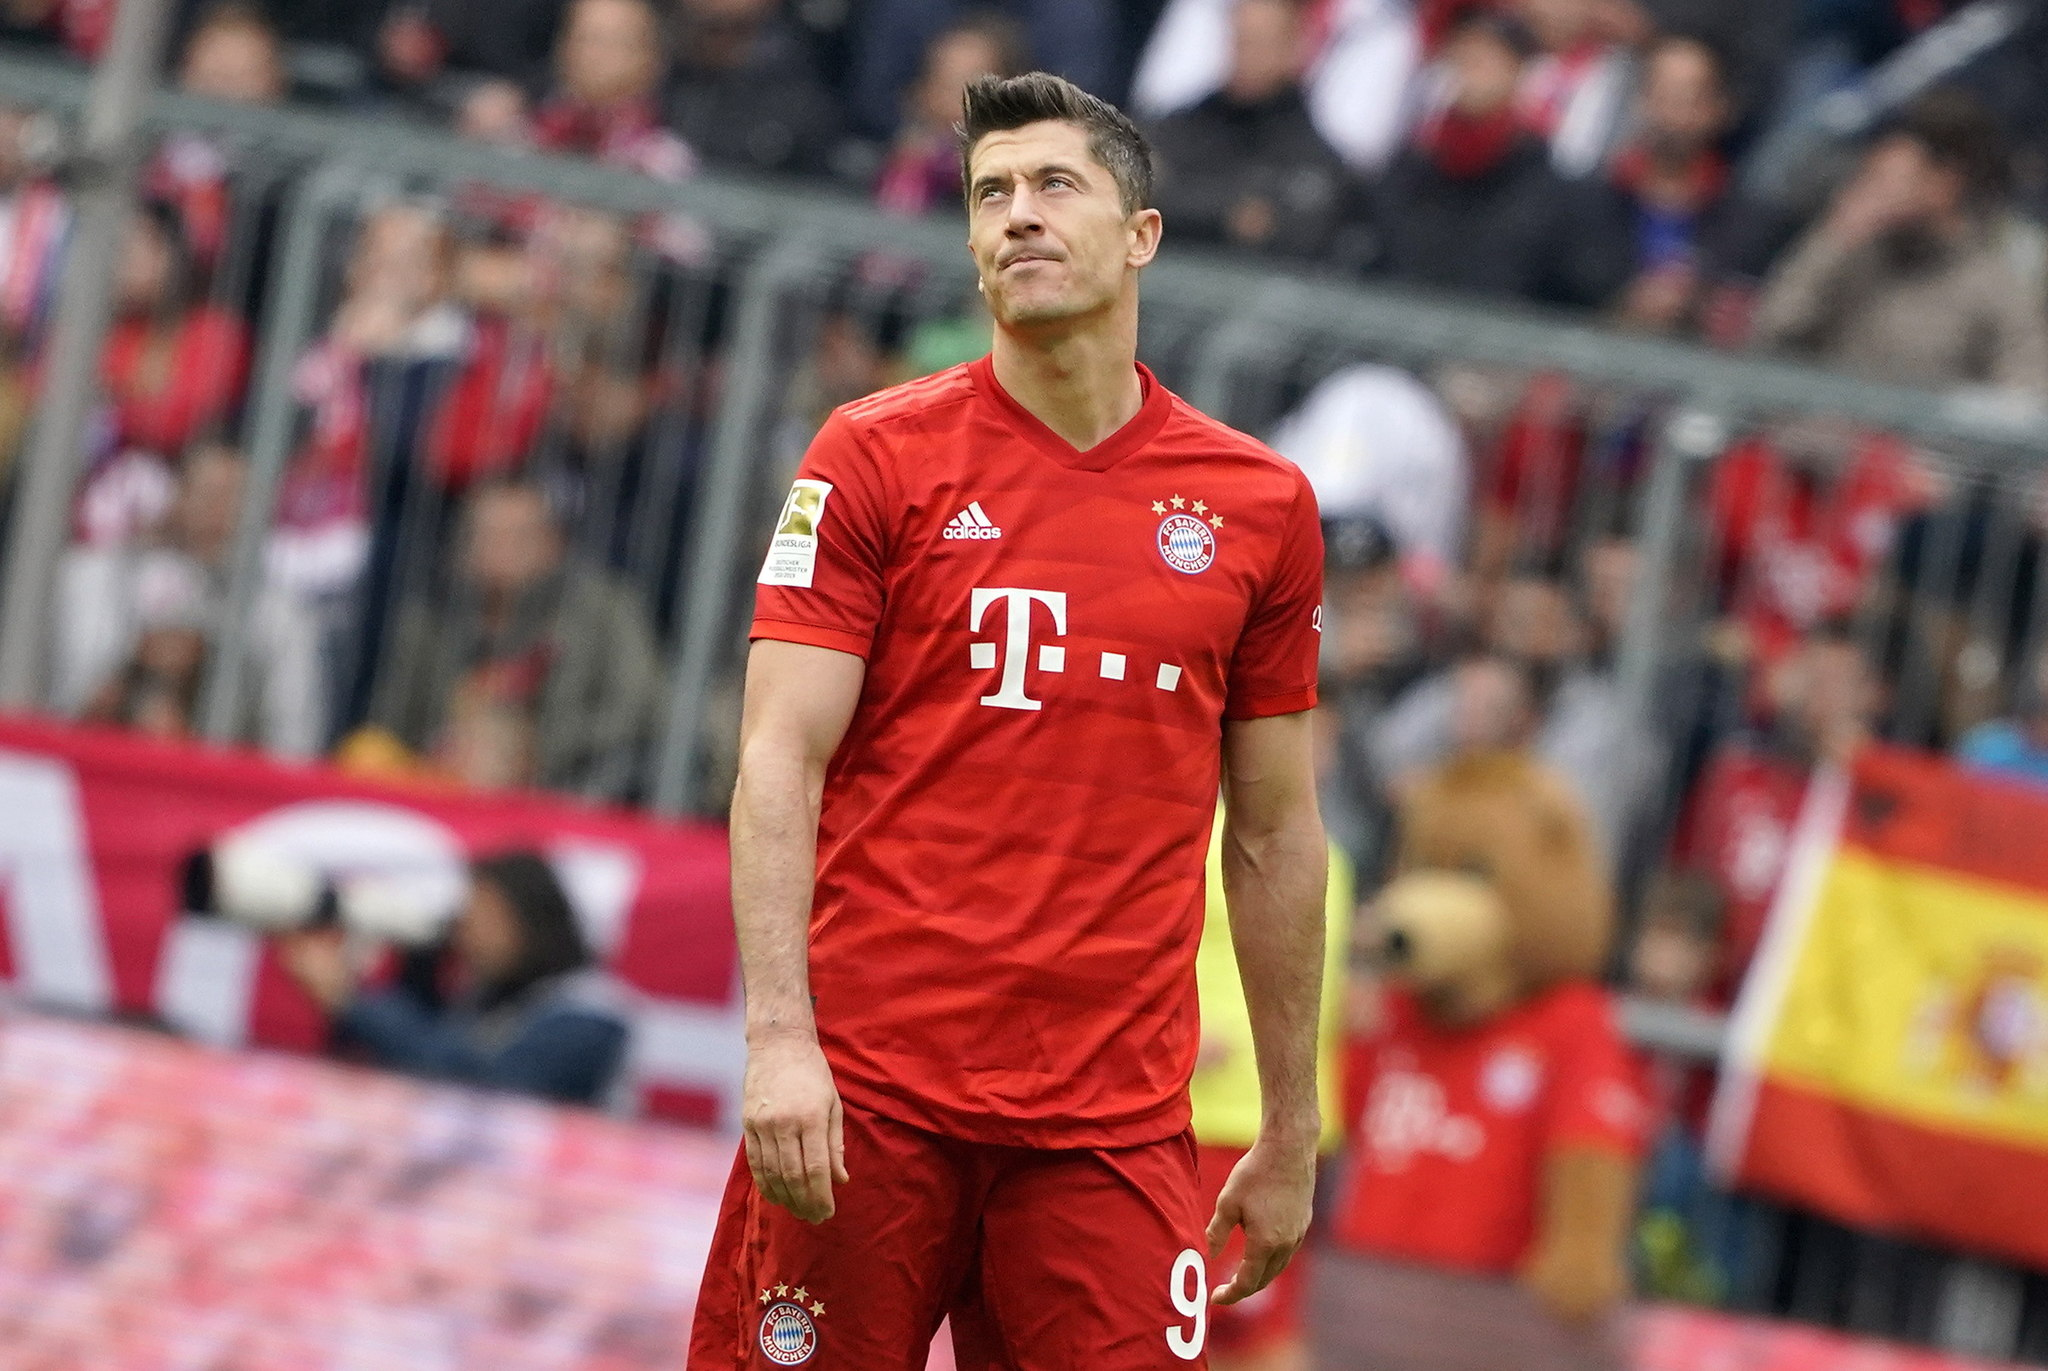 Munich (Germany), 05/10/2019.- <HIT>Bayern</HIT>s Robert Lewandowski reacts during the German Bundesliga soccer match between FC <HIT>Bayern</HIT> Munich and TSG 1899 Hoffenheim in Munich, Germany, 05 October 2019. (Alemania) EFE/EPA/RONALD WITTEK CONDITIONS - ATTENTION: The DFL regulations prohibit any use of photographs as image sequences and/or quasi-video